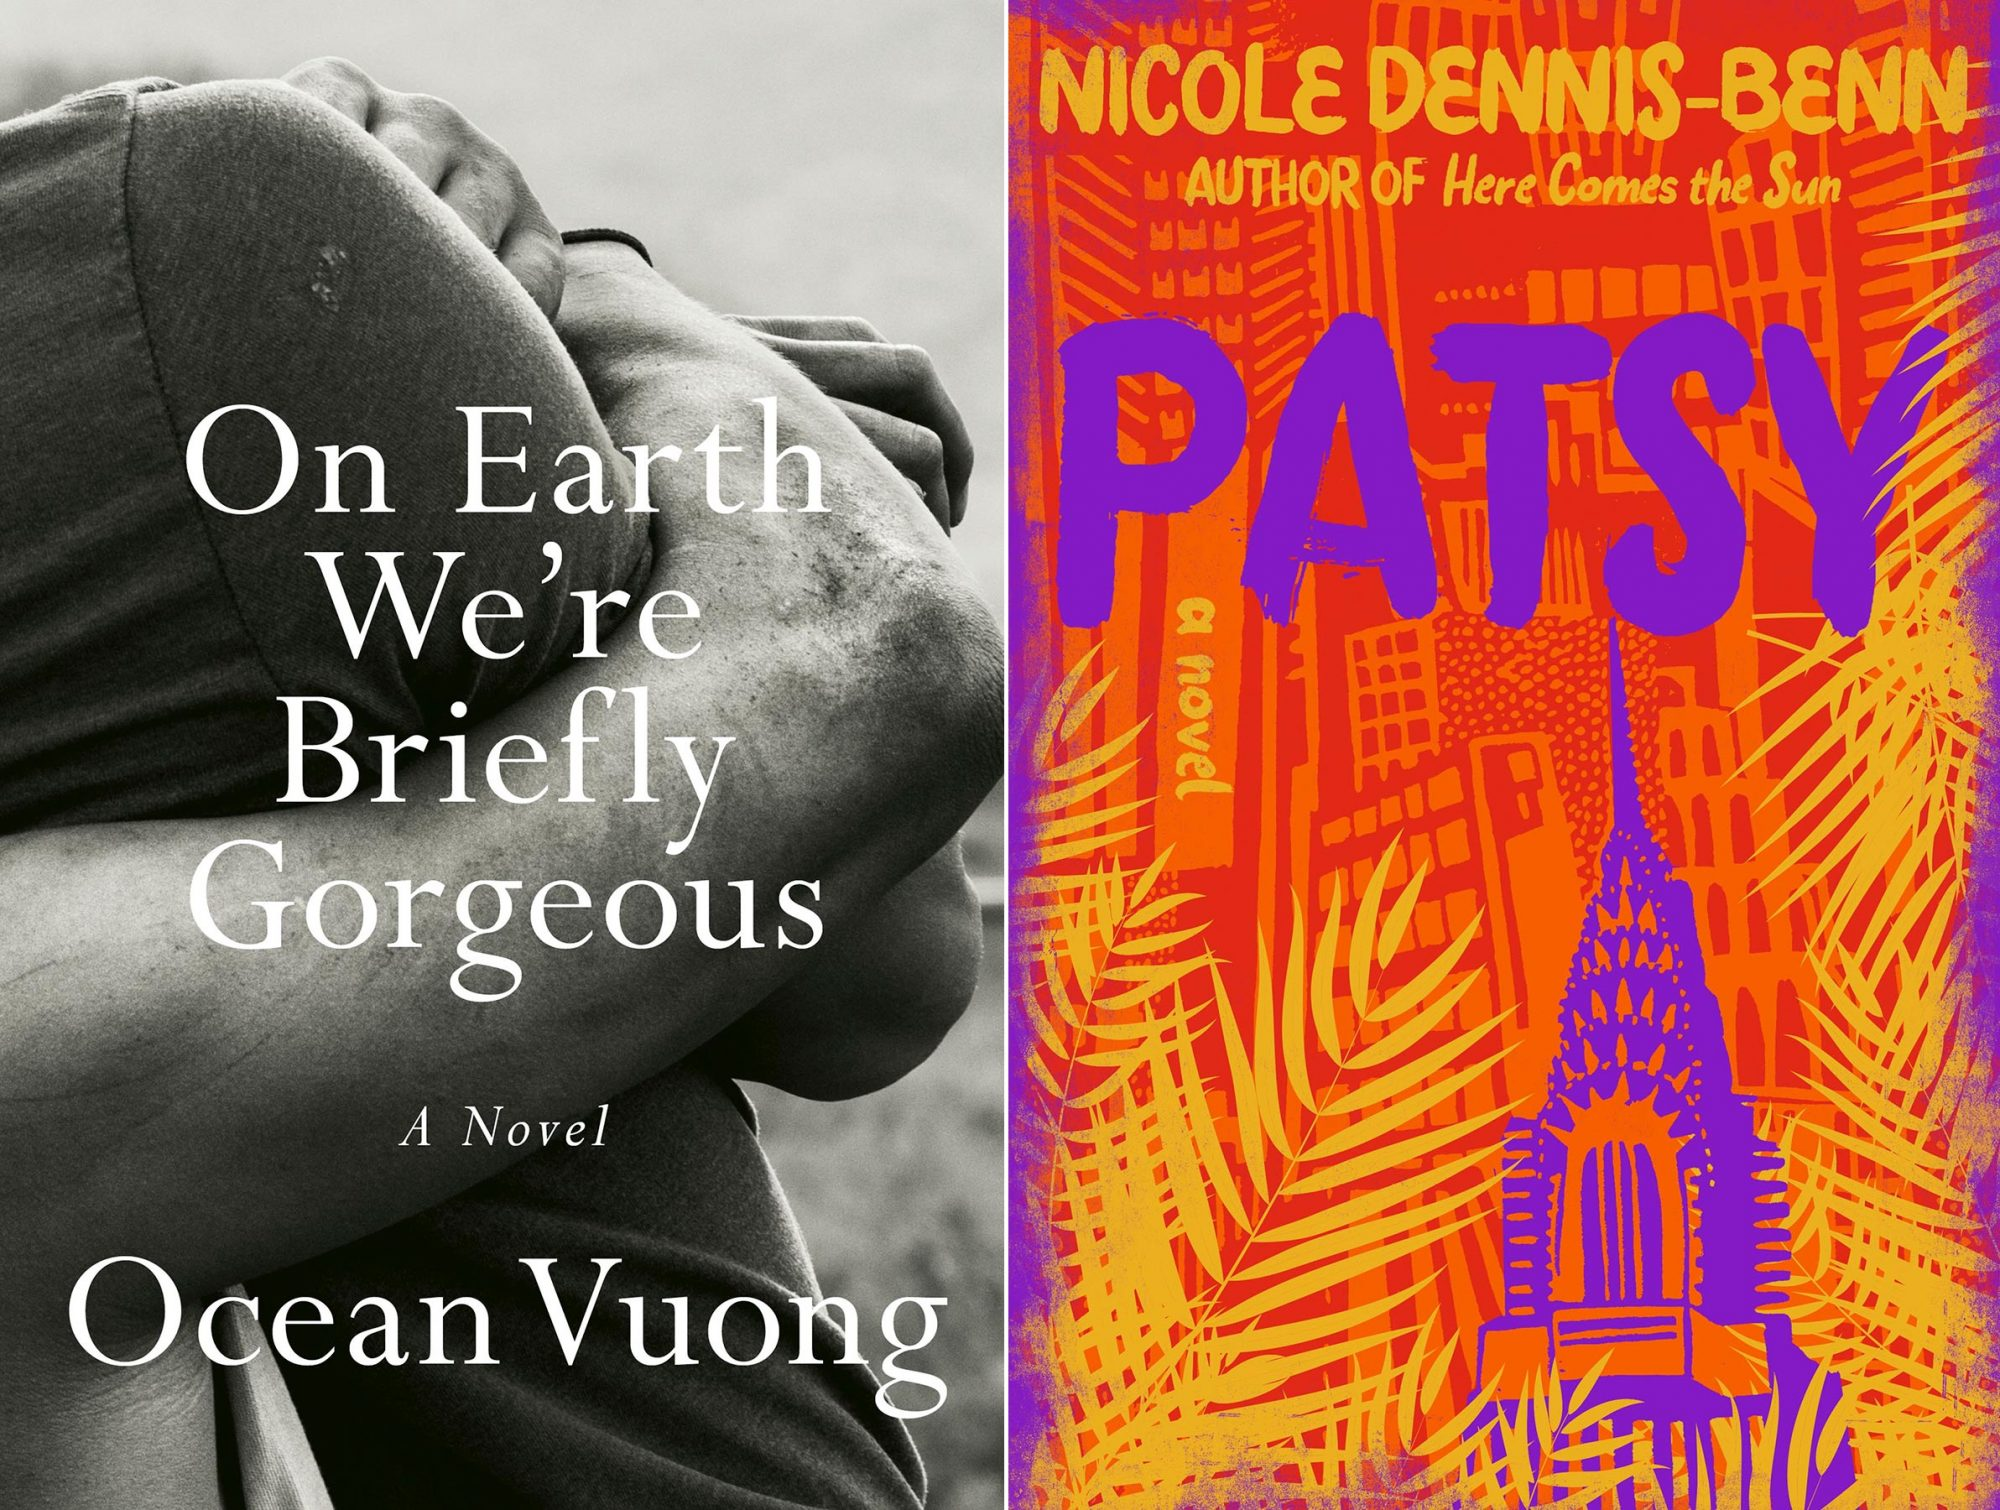 On Earth We're Briefly Gorgeous (2019) by Ocean Vuong Patsy (2019) Author: Nicole Dennis-Benn CR: Liveright